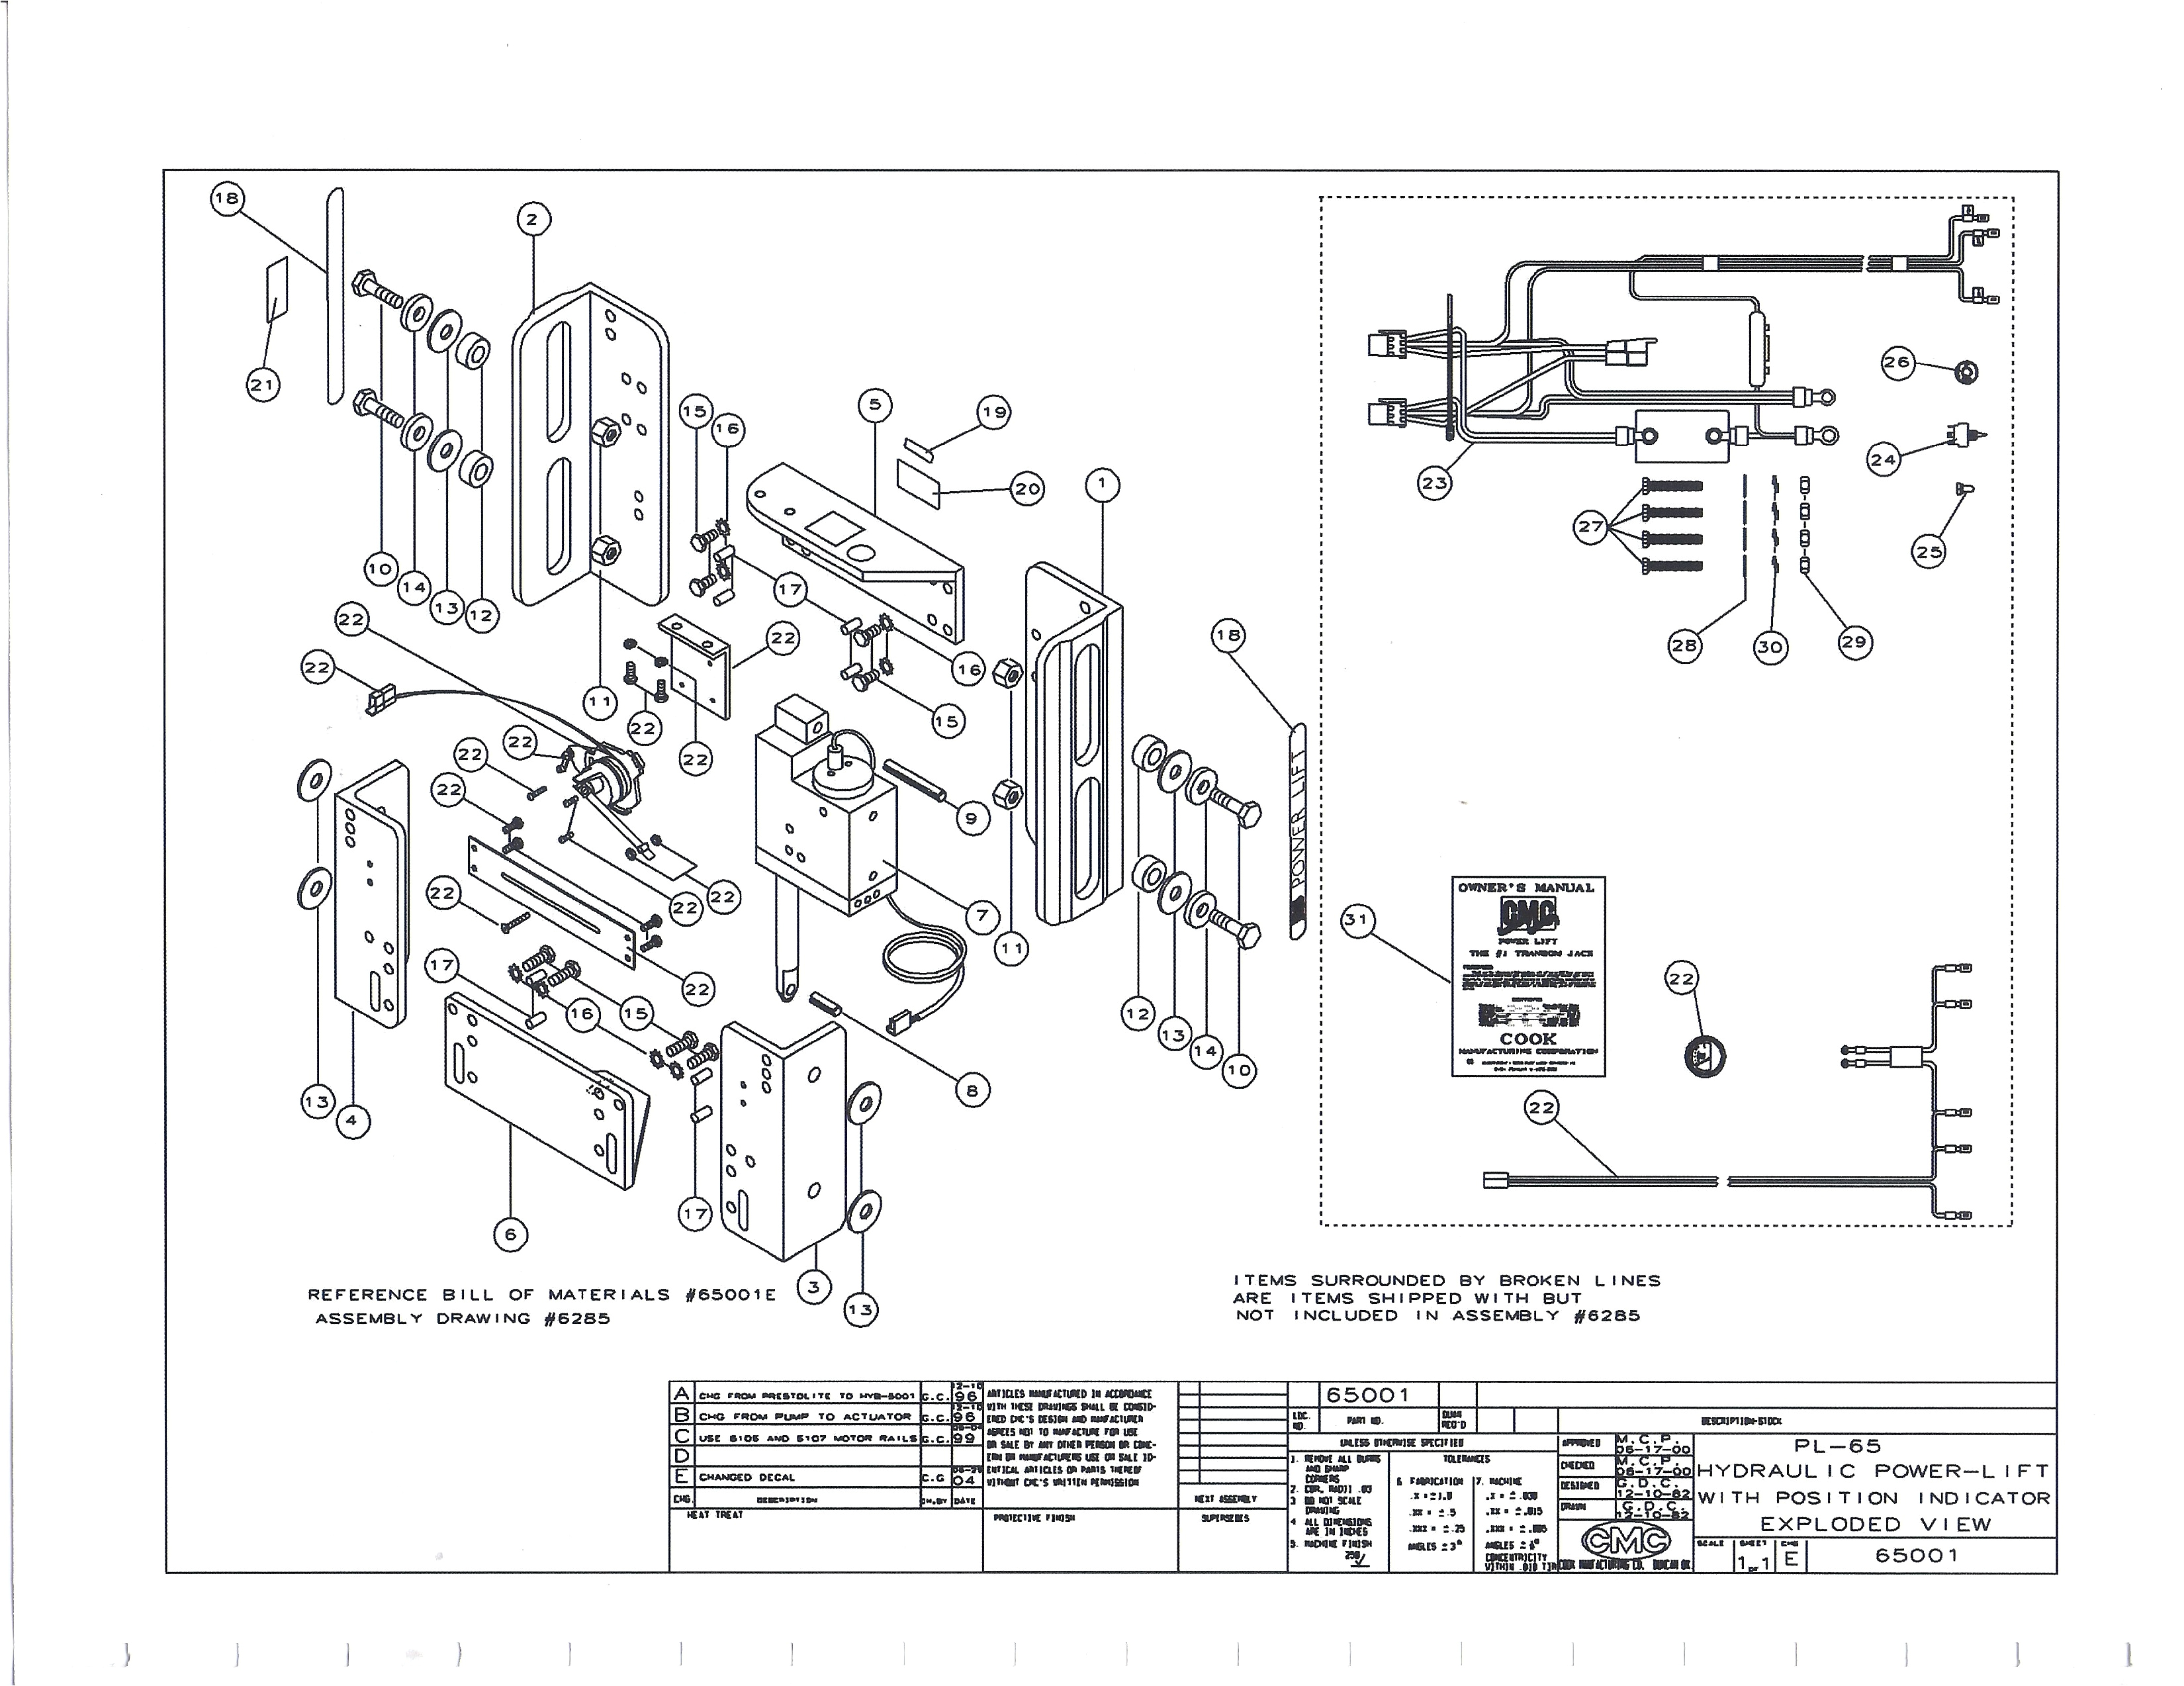 Power Lift Jack Plate Wiring Diagram Cmc Power Lift Wiring Diagram New Jack Plate Wiring Diagram